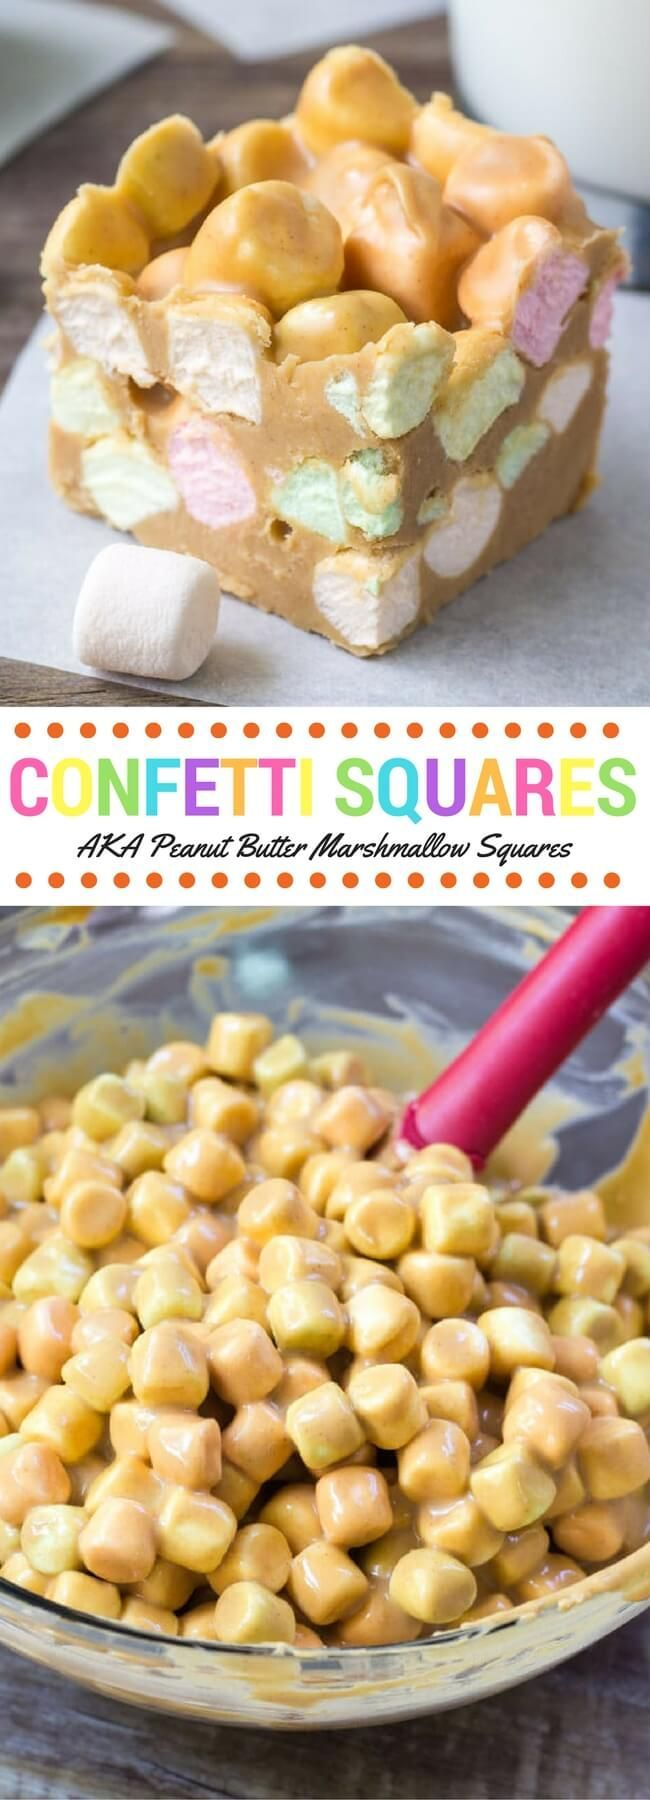 Confetti squares just like grandma made! Also known as peanut butter marshmallow squares - these are no bake, only 4 ingredients, soft, chewy, peanut buttery